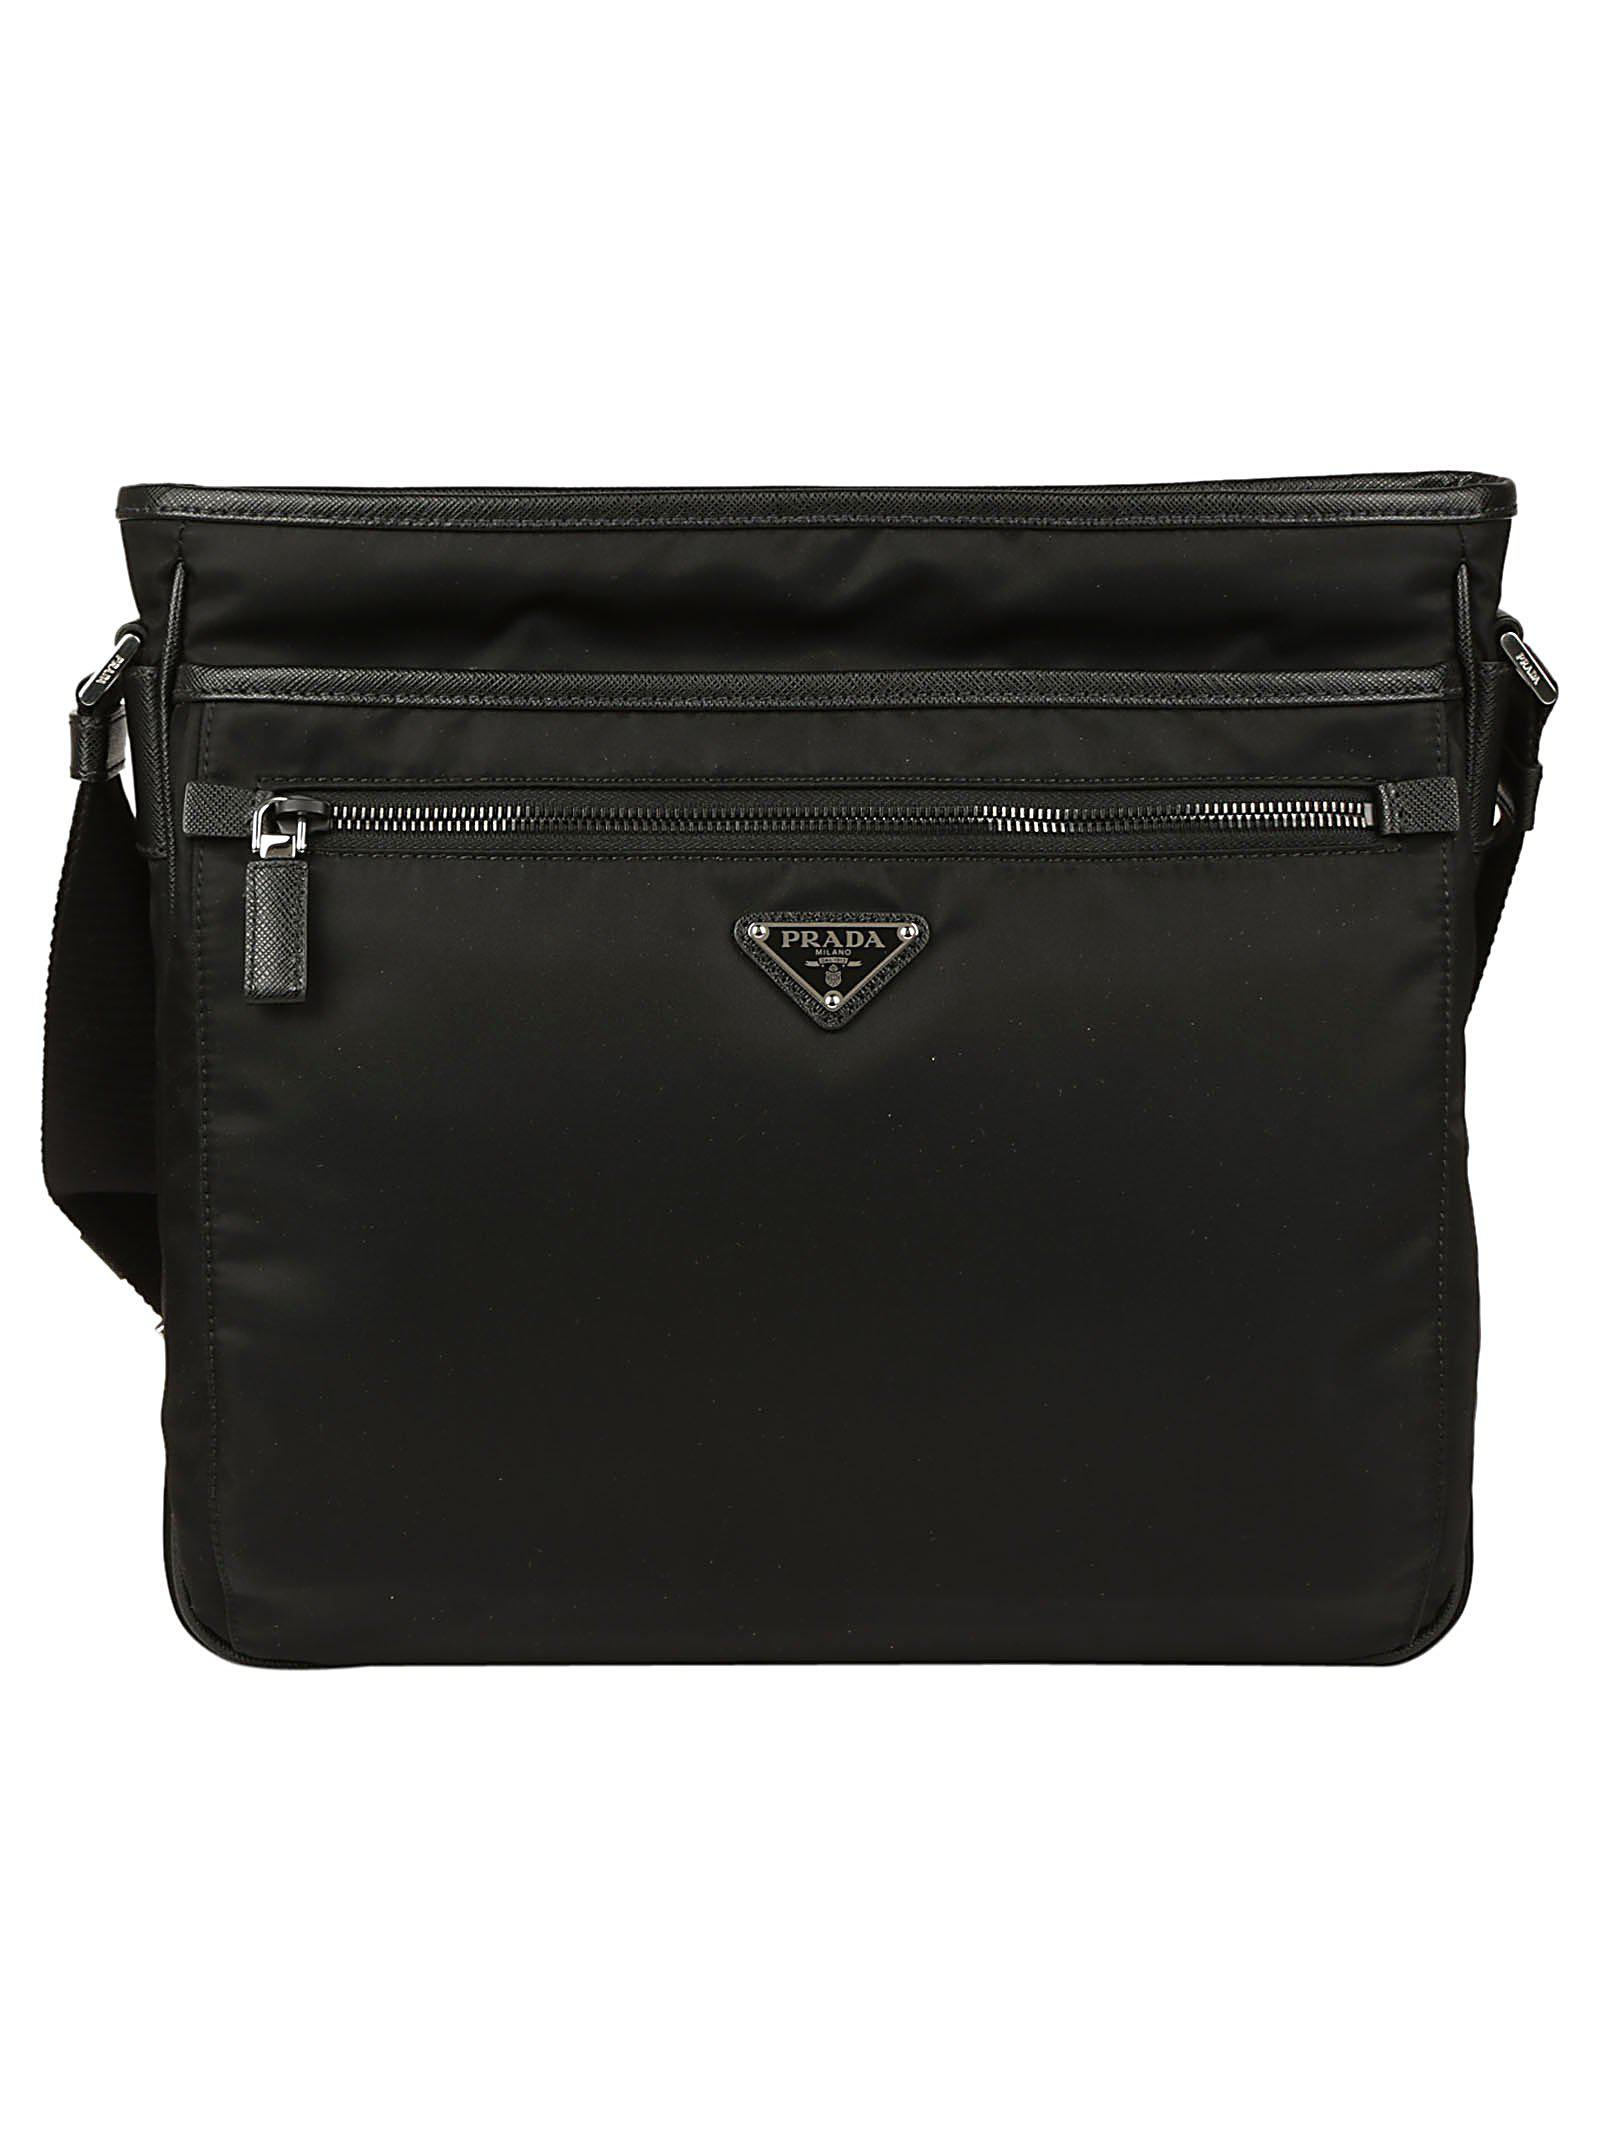 ebdeff1162f729 Lyst - Prada Zip Messenger Bag in Black for Men